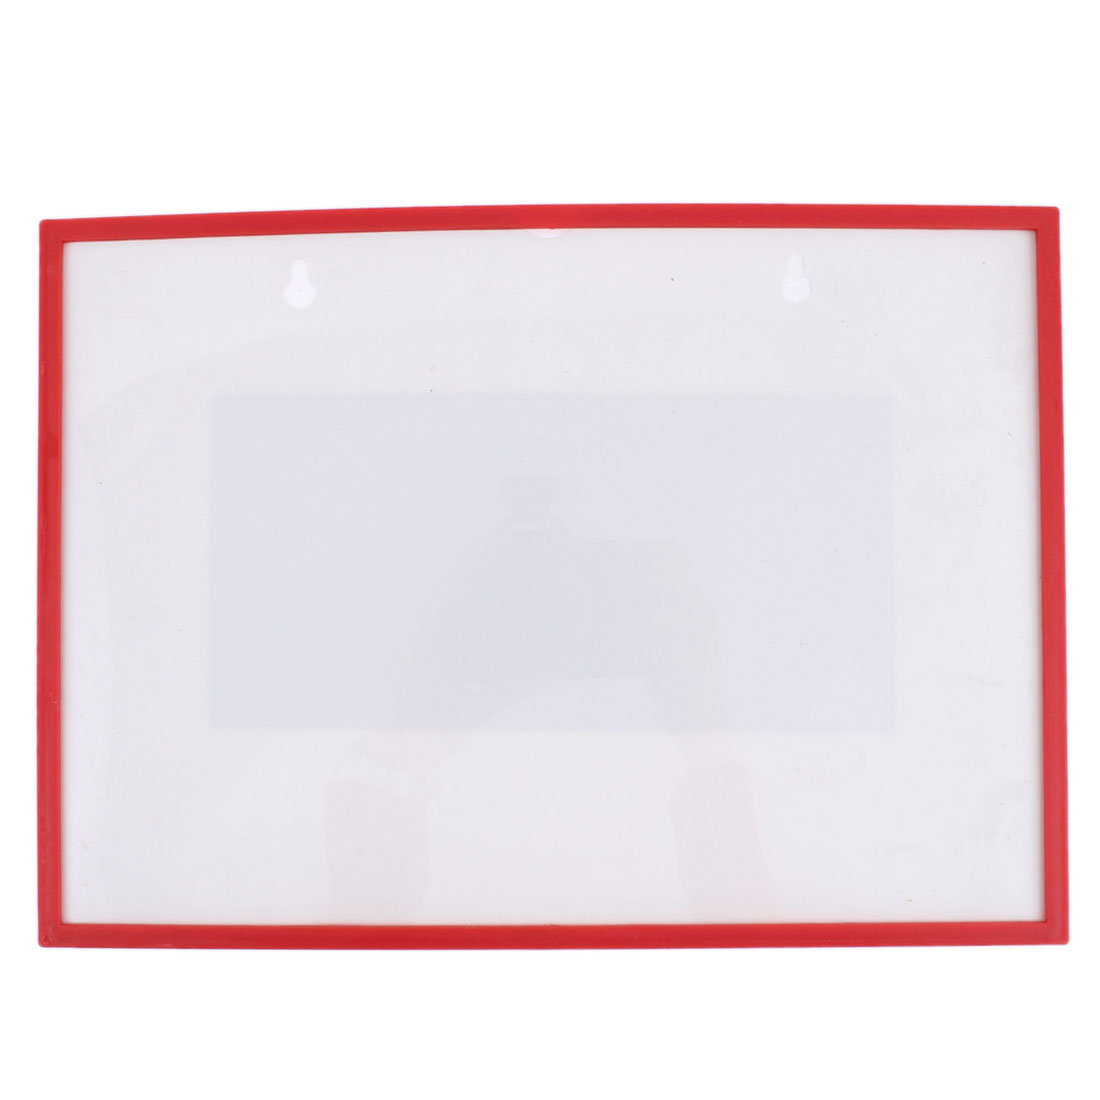 Red Plastic Frame A5 Name Badge Card Holder Protector Cover Case